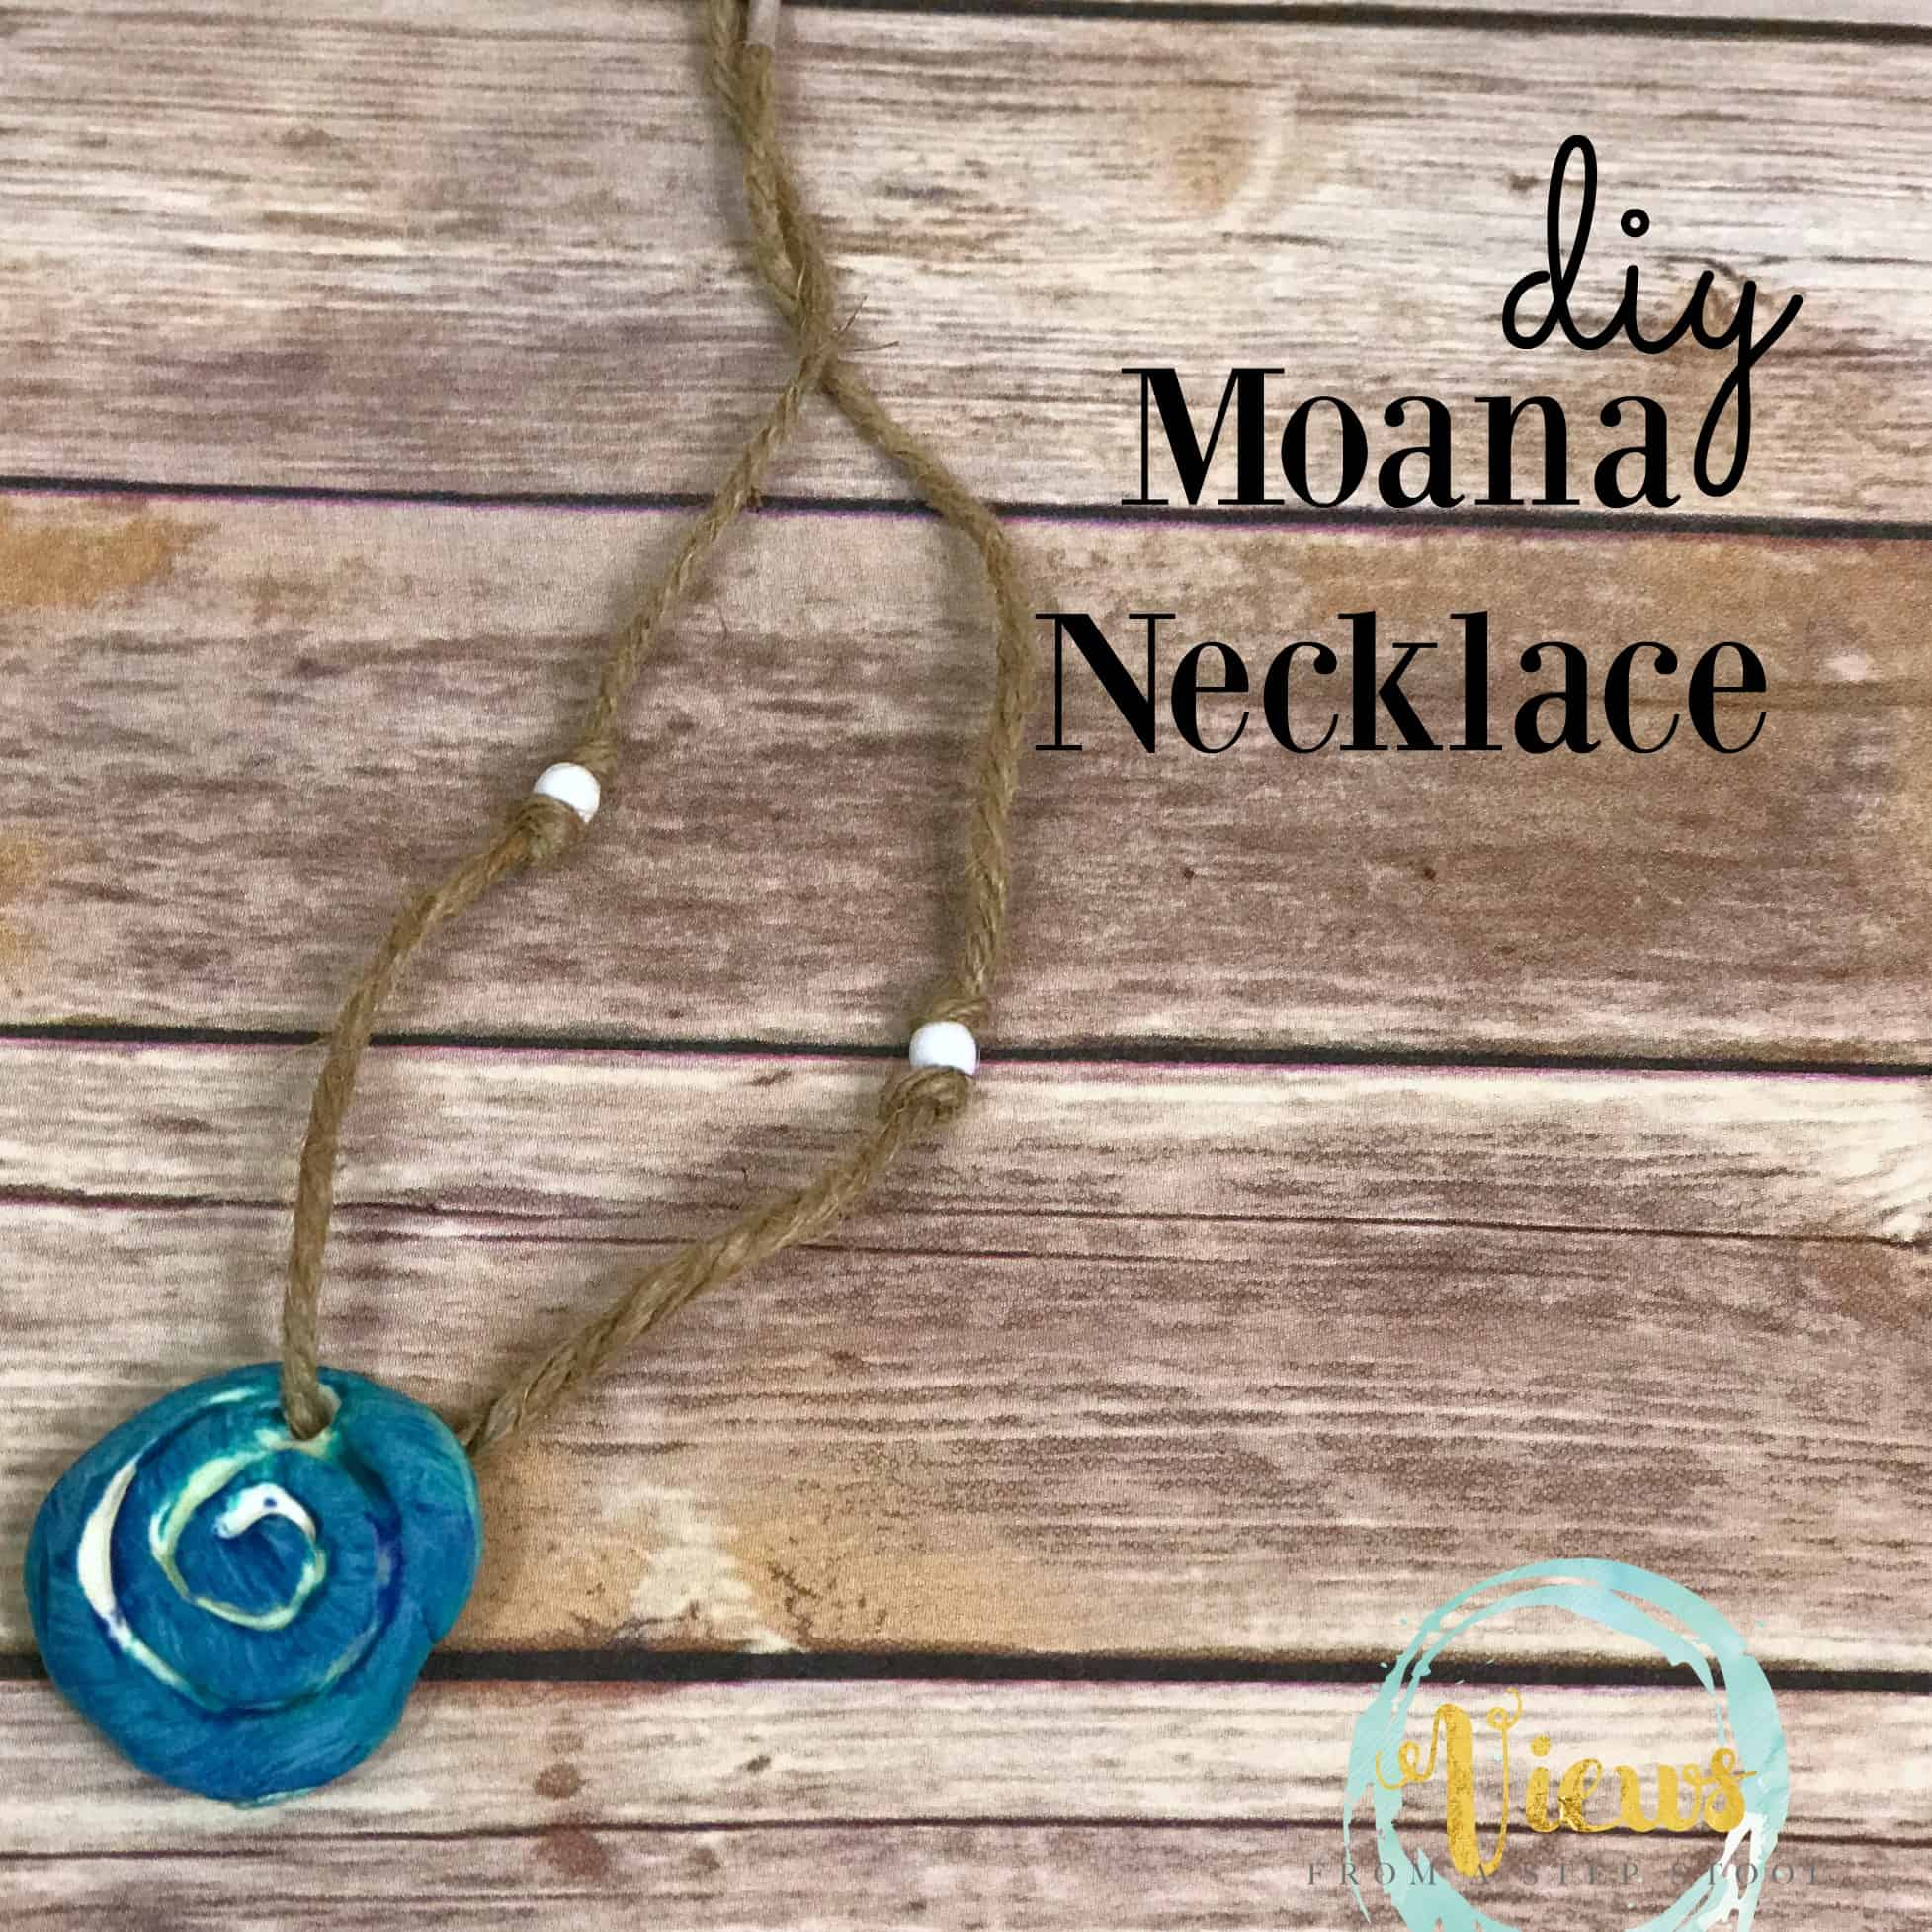 moana necklace 8